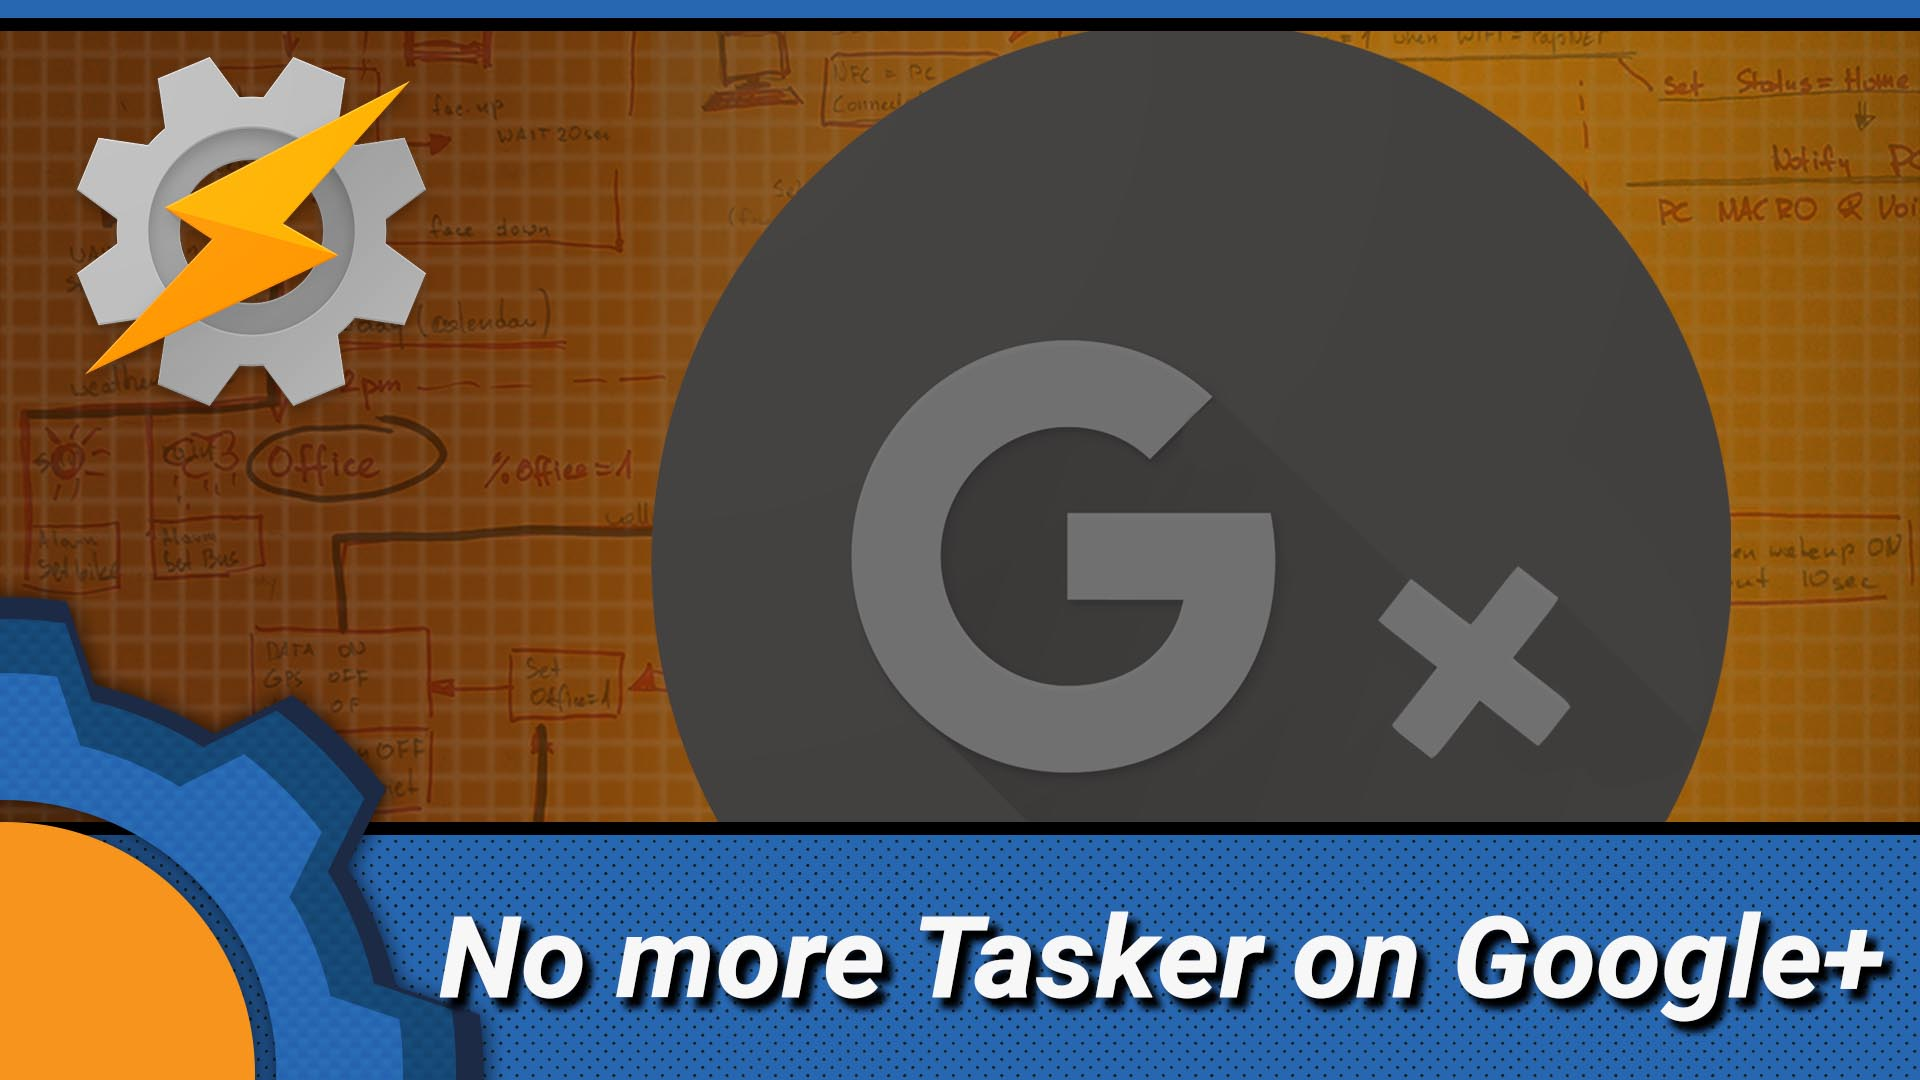 What does Google+ shutdown means to Tasker community - Not